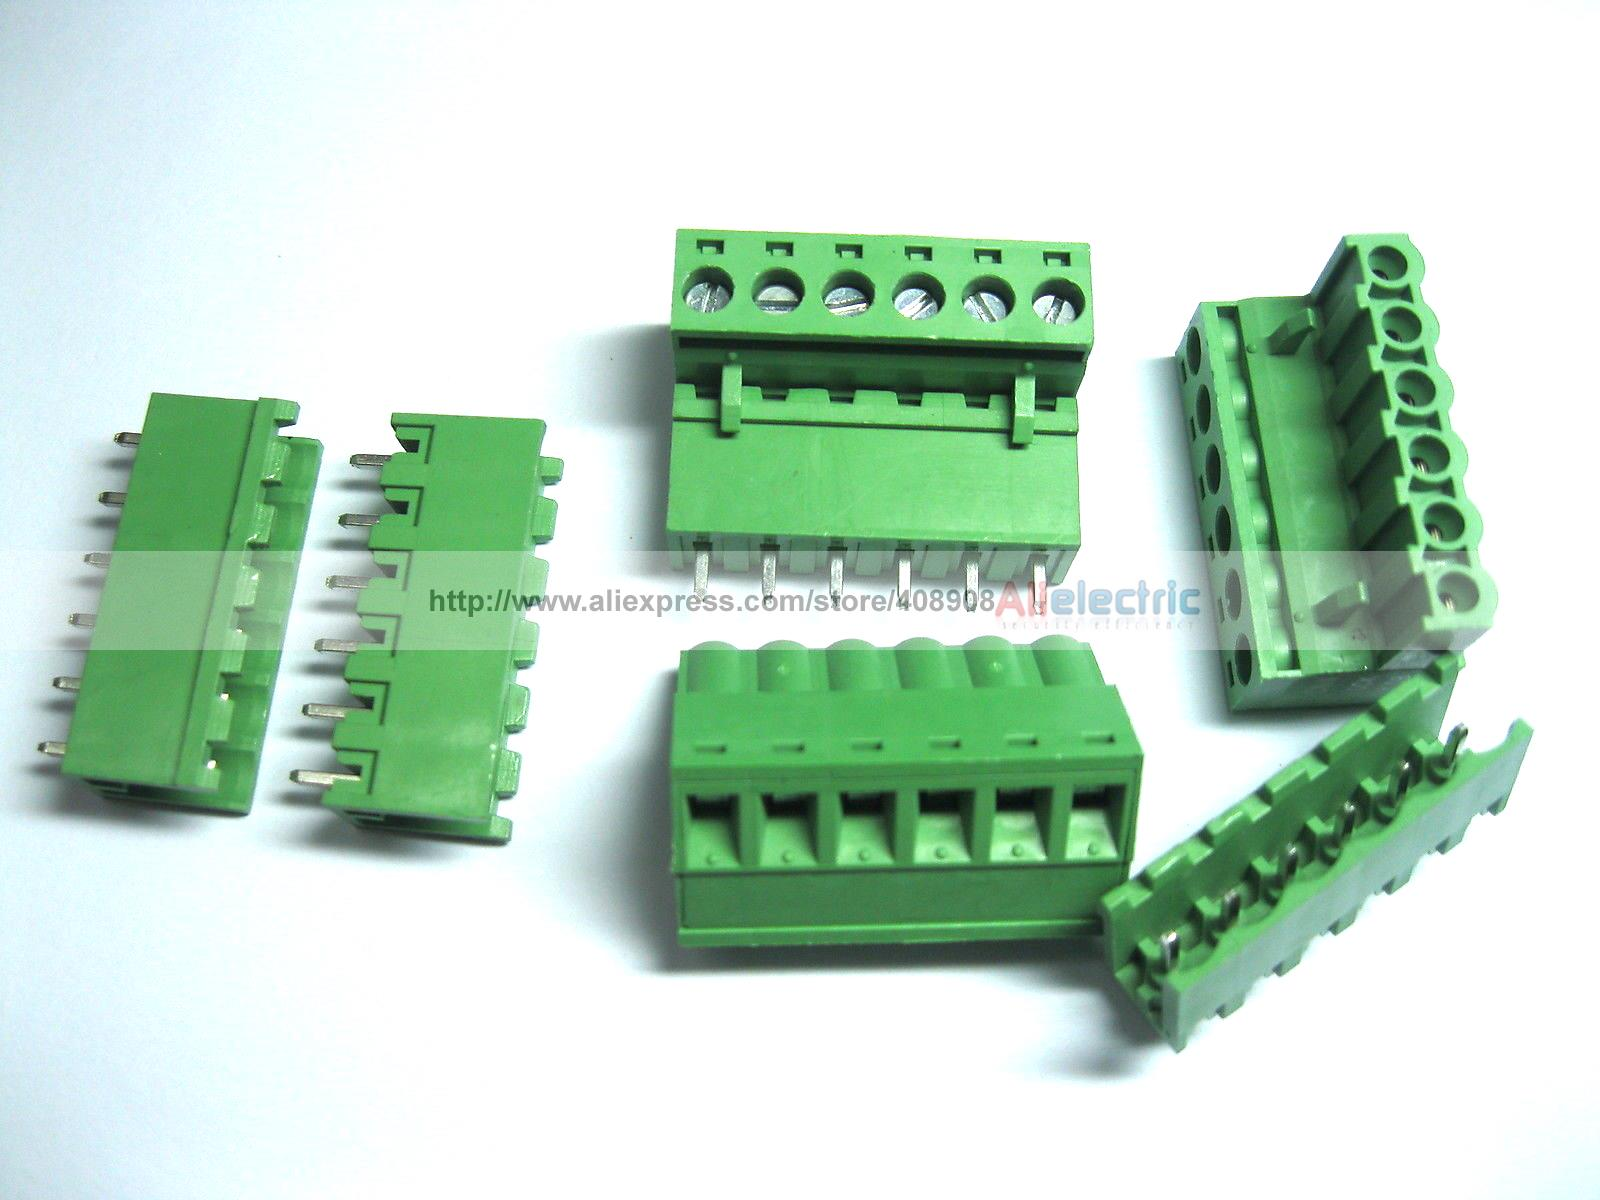 100 Pcs Green 6 Pin 5.08mm Screw Terminal Block Connector Pluggable Type 30 pcs 5 08mm angle 16 pin screw terminal block connector pluggable type green